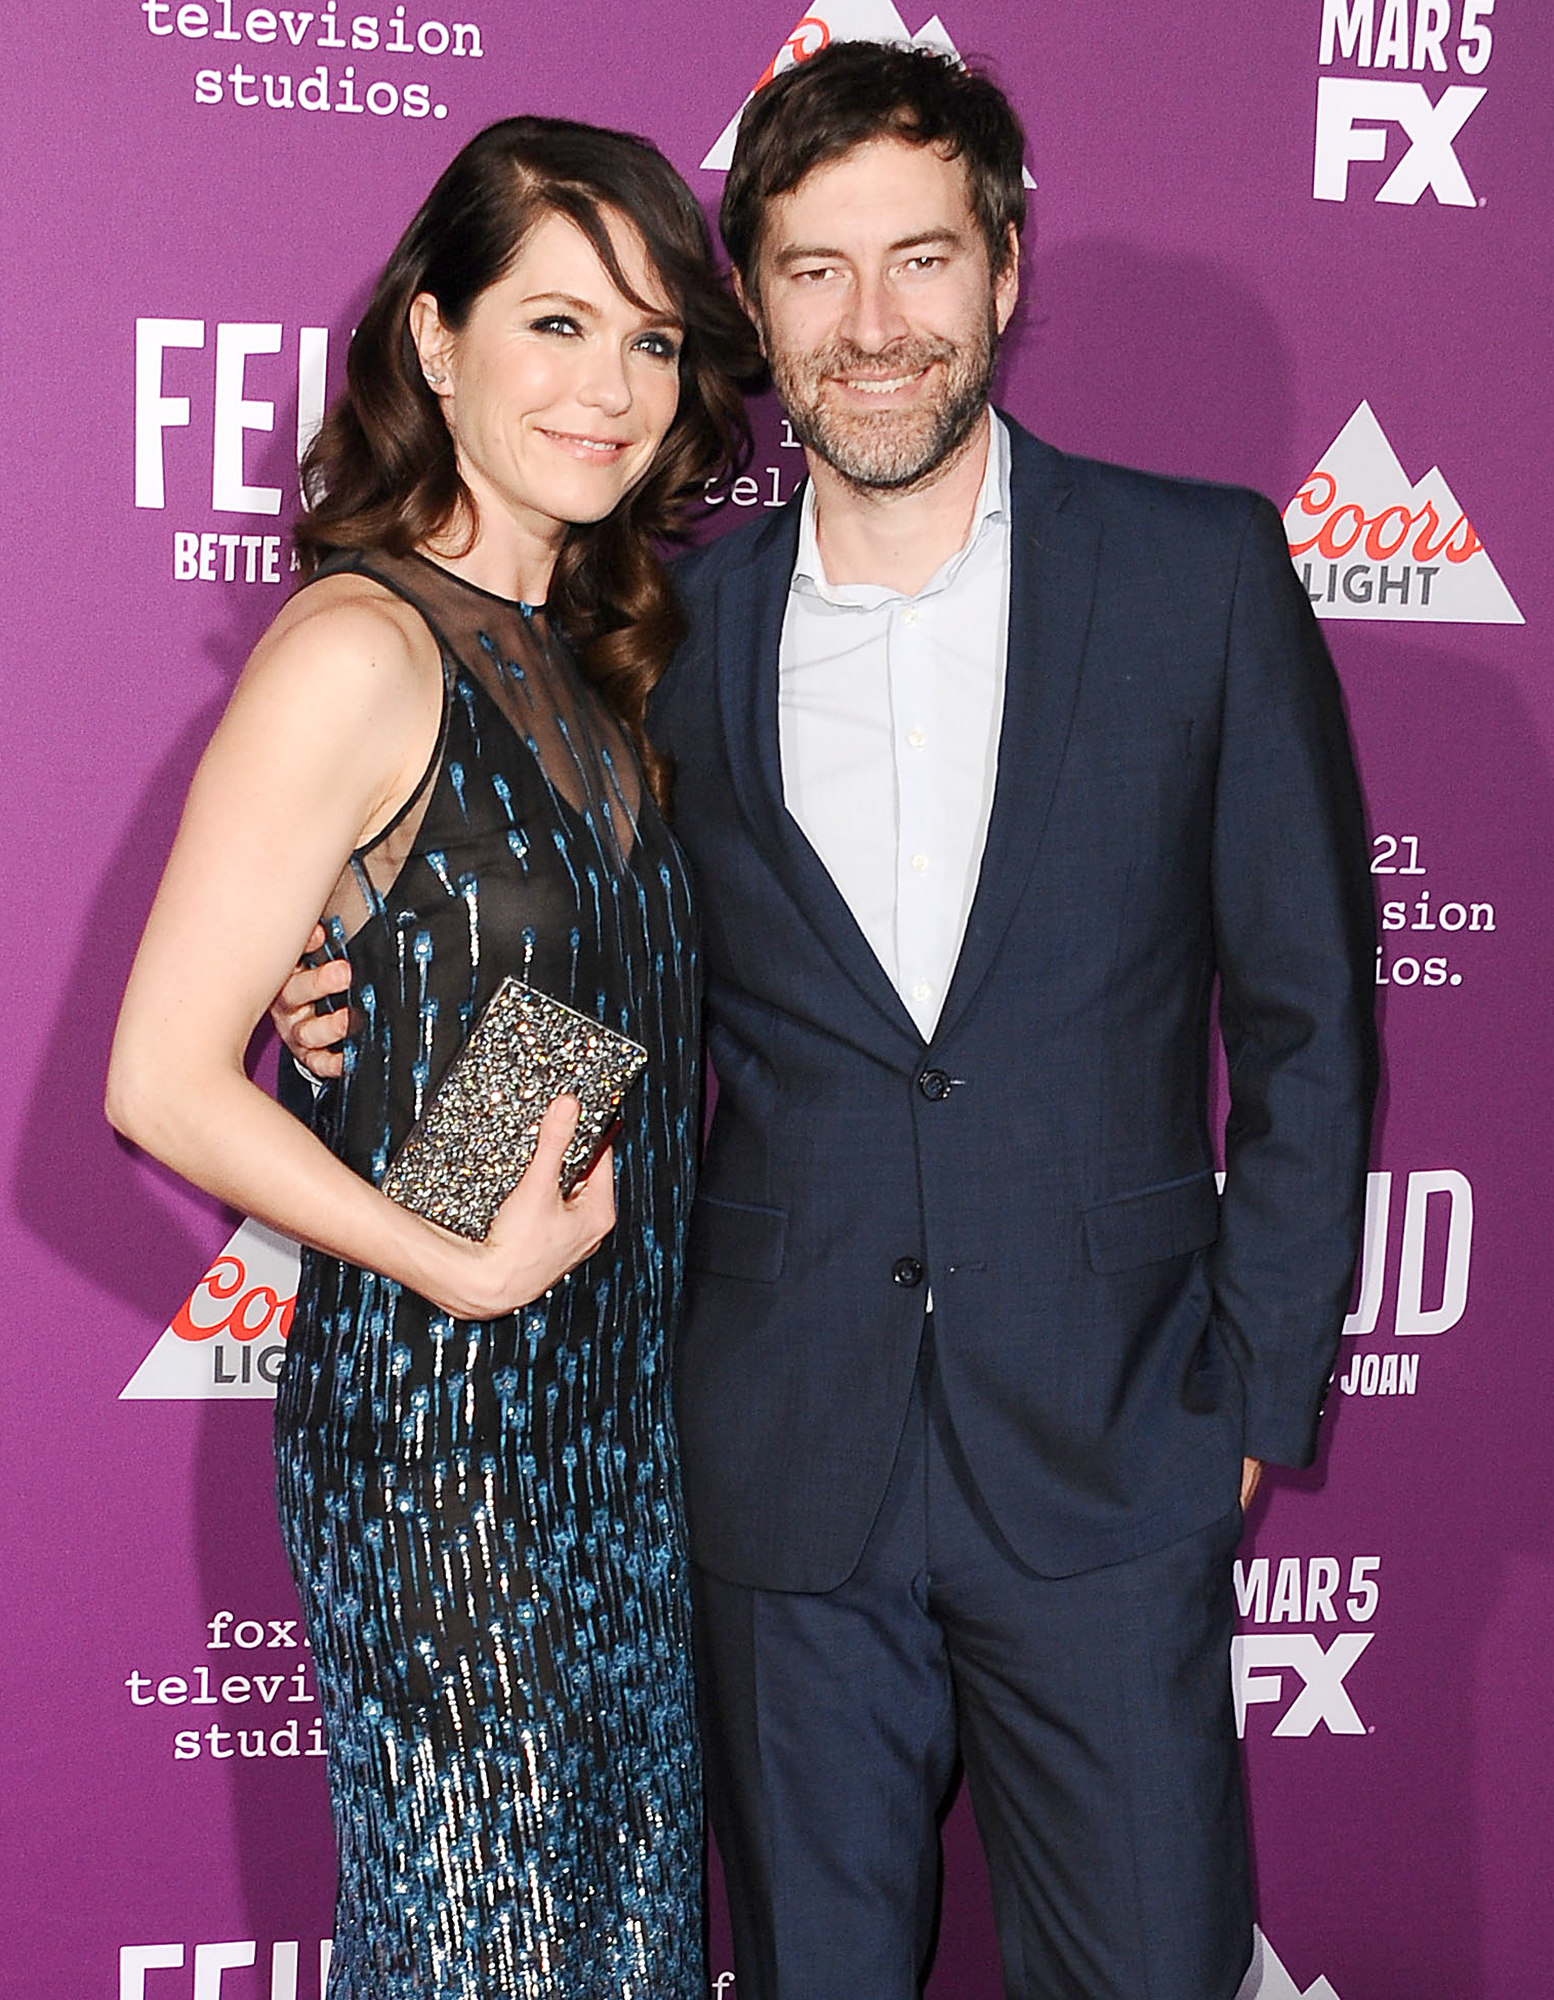 """Premiere Of FX Network's """"Feud: Bette And Joan"""" - Arrivals"""